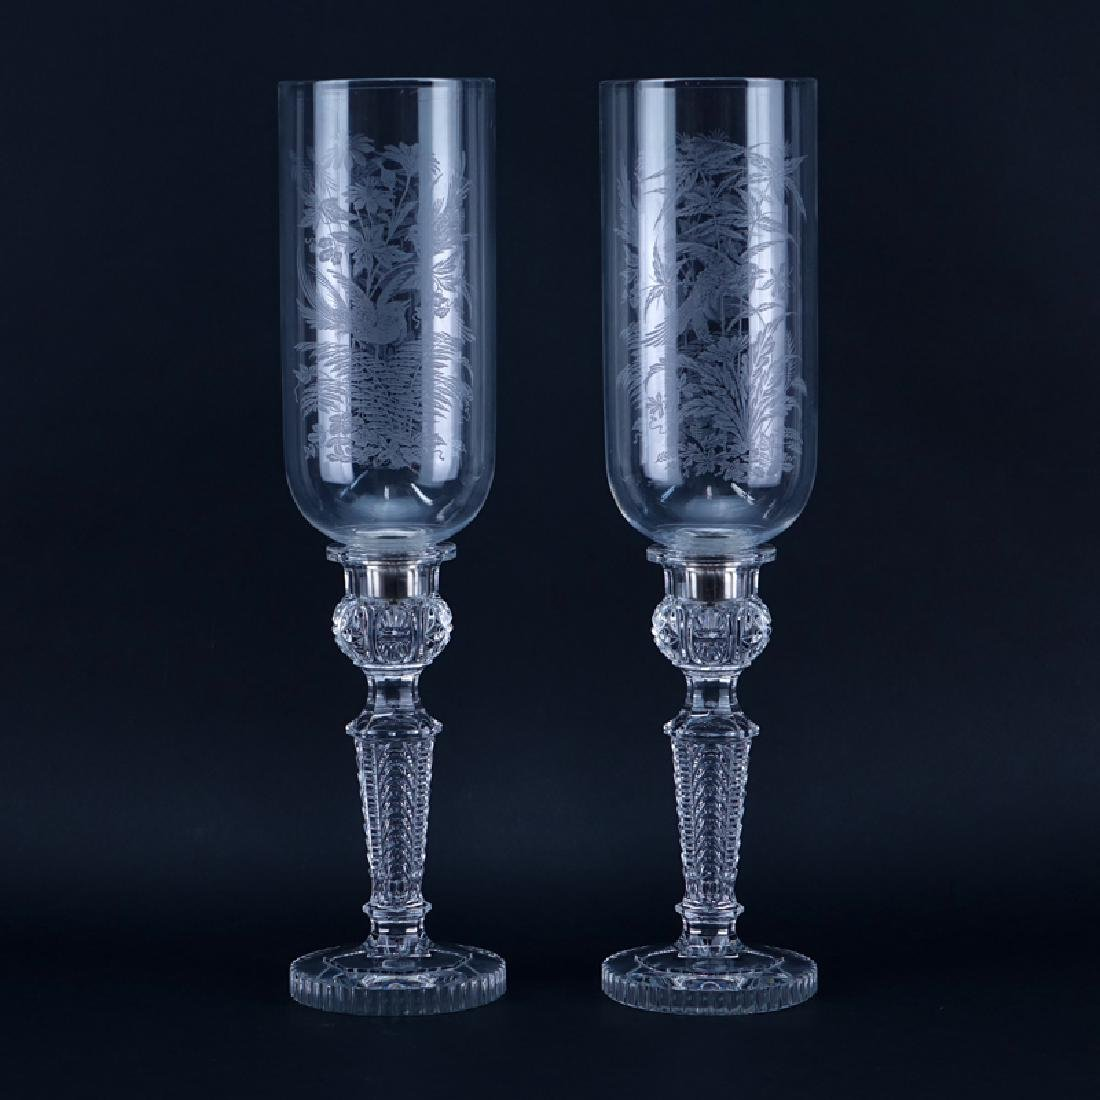 Pair Of Baccarat Crystal Candlesticks With Hurricane